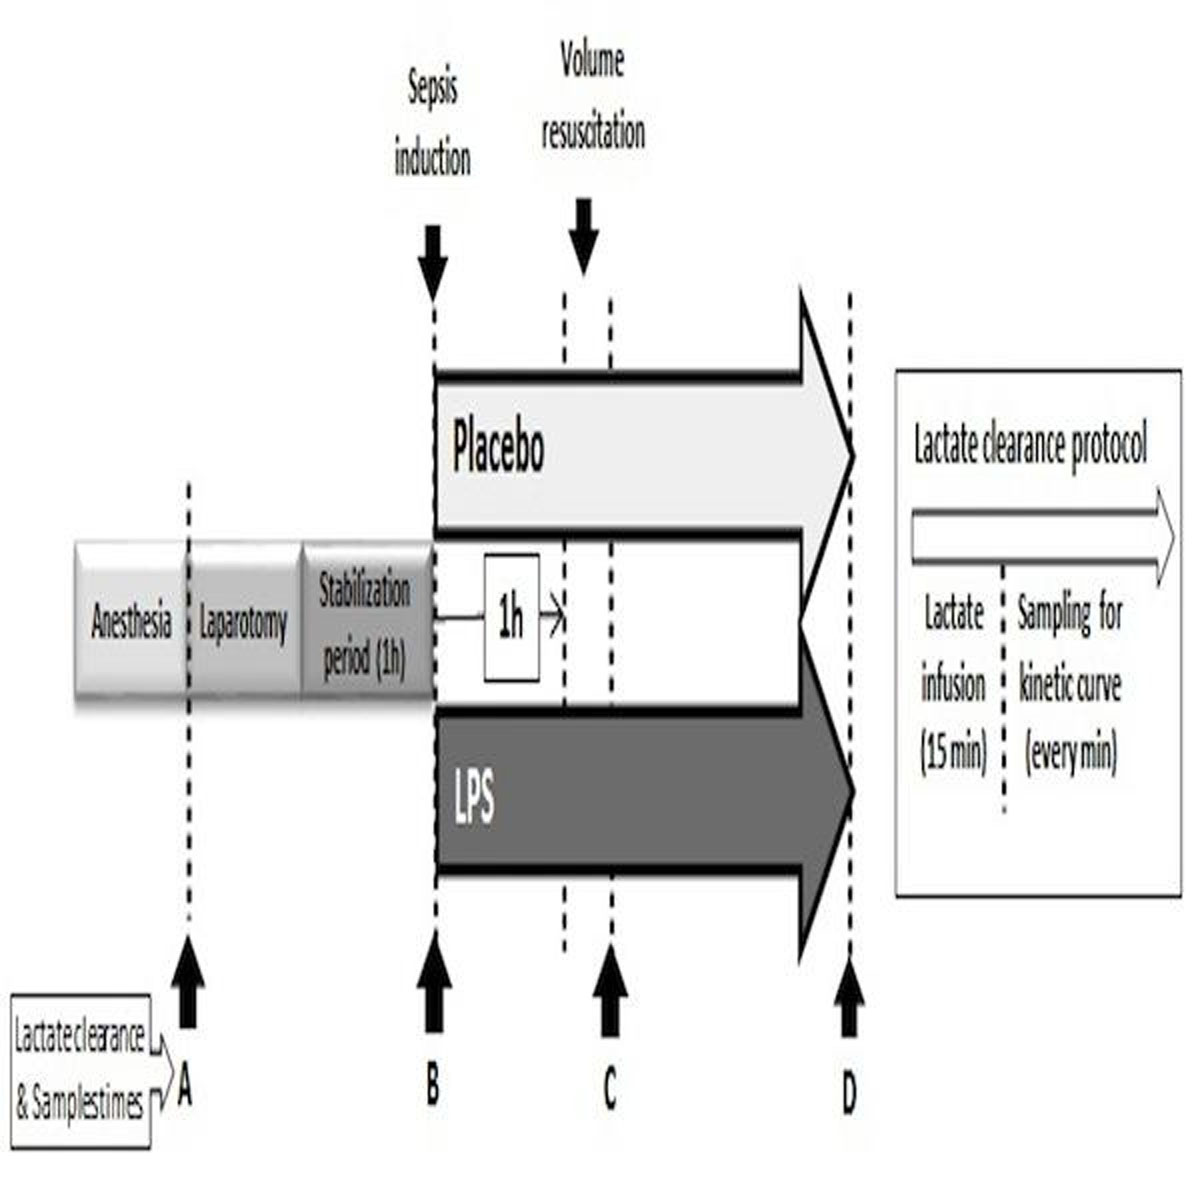 https://static-content.springer.com/image/art%3A10.1186%2F2197-425X-2-S1-P12/MediaObjects/40635_2014_Article_69_Fig1_HTML.jpg